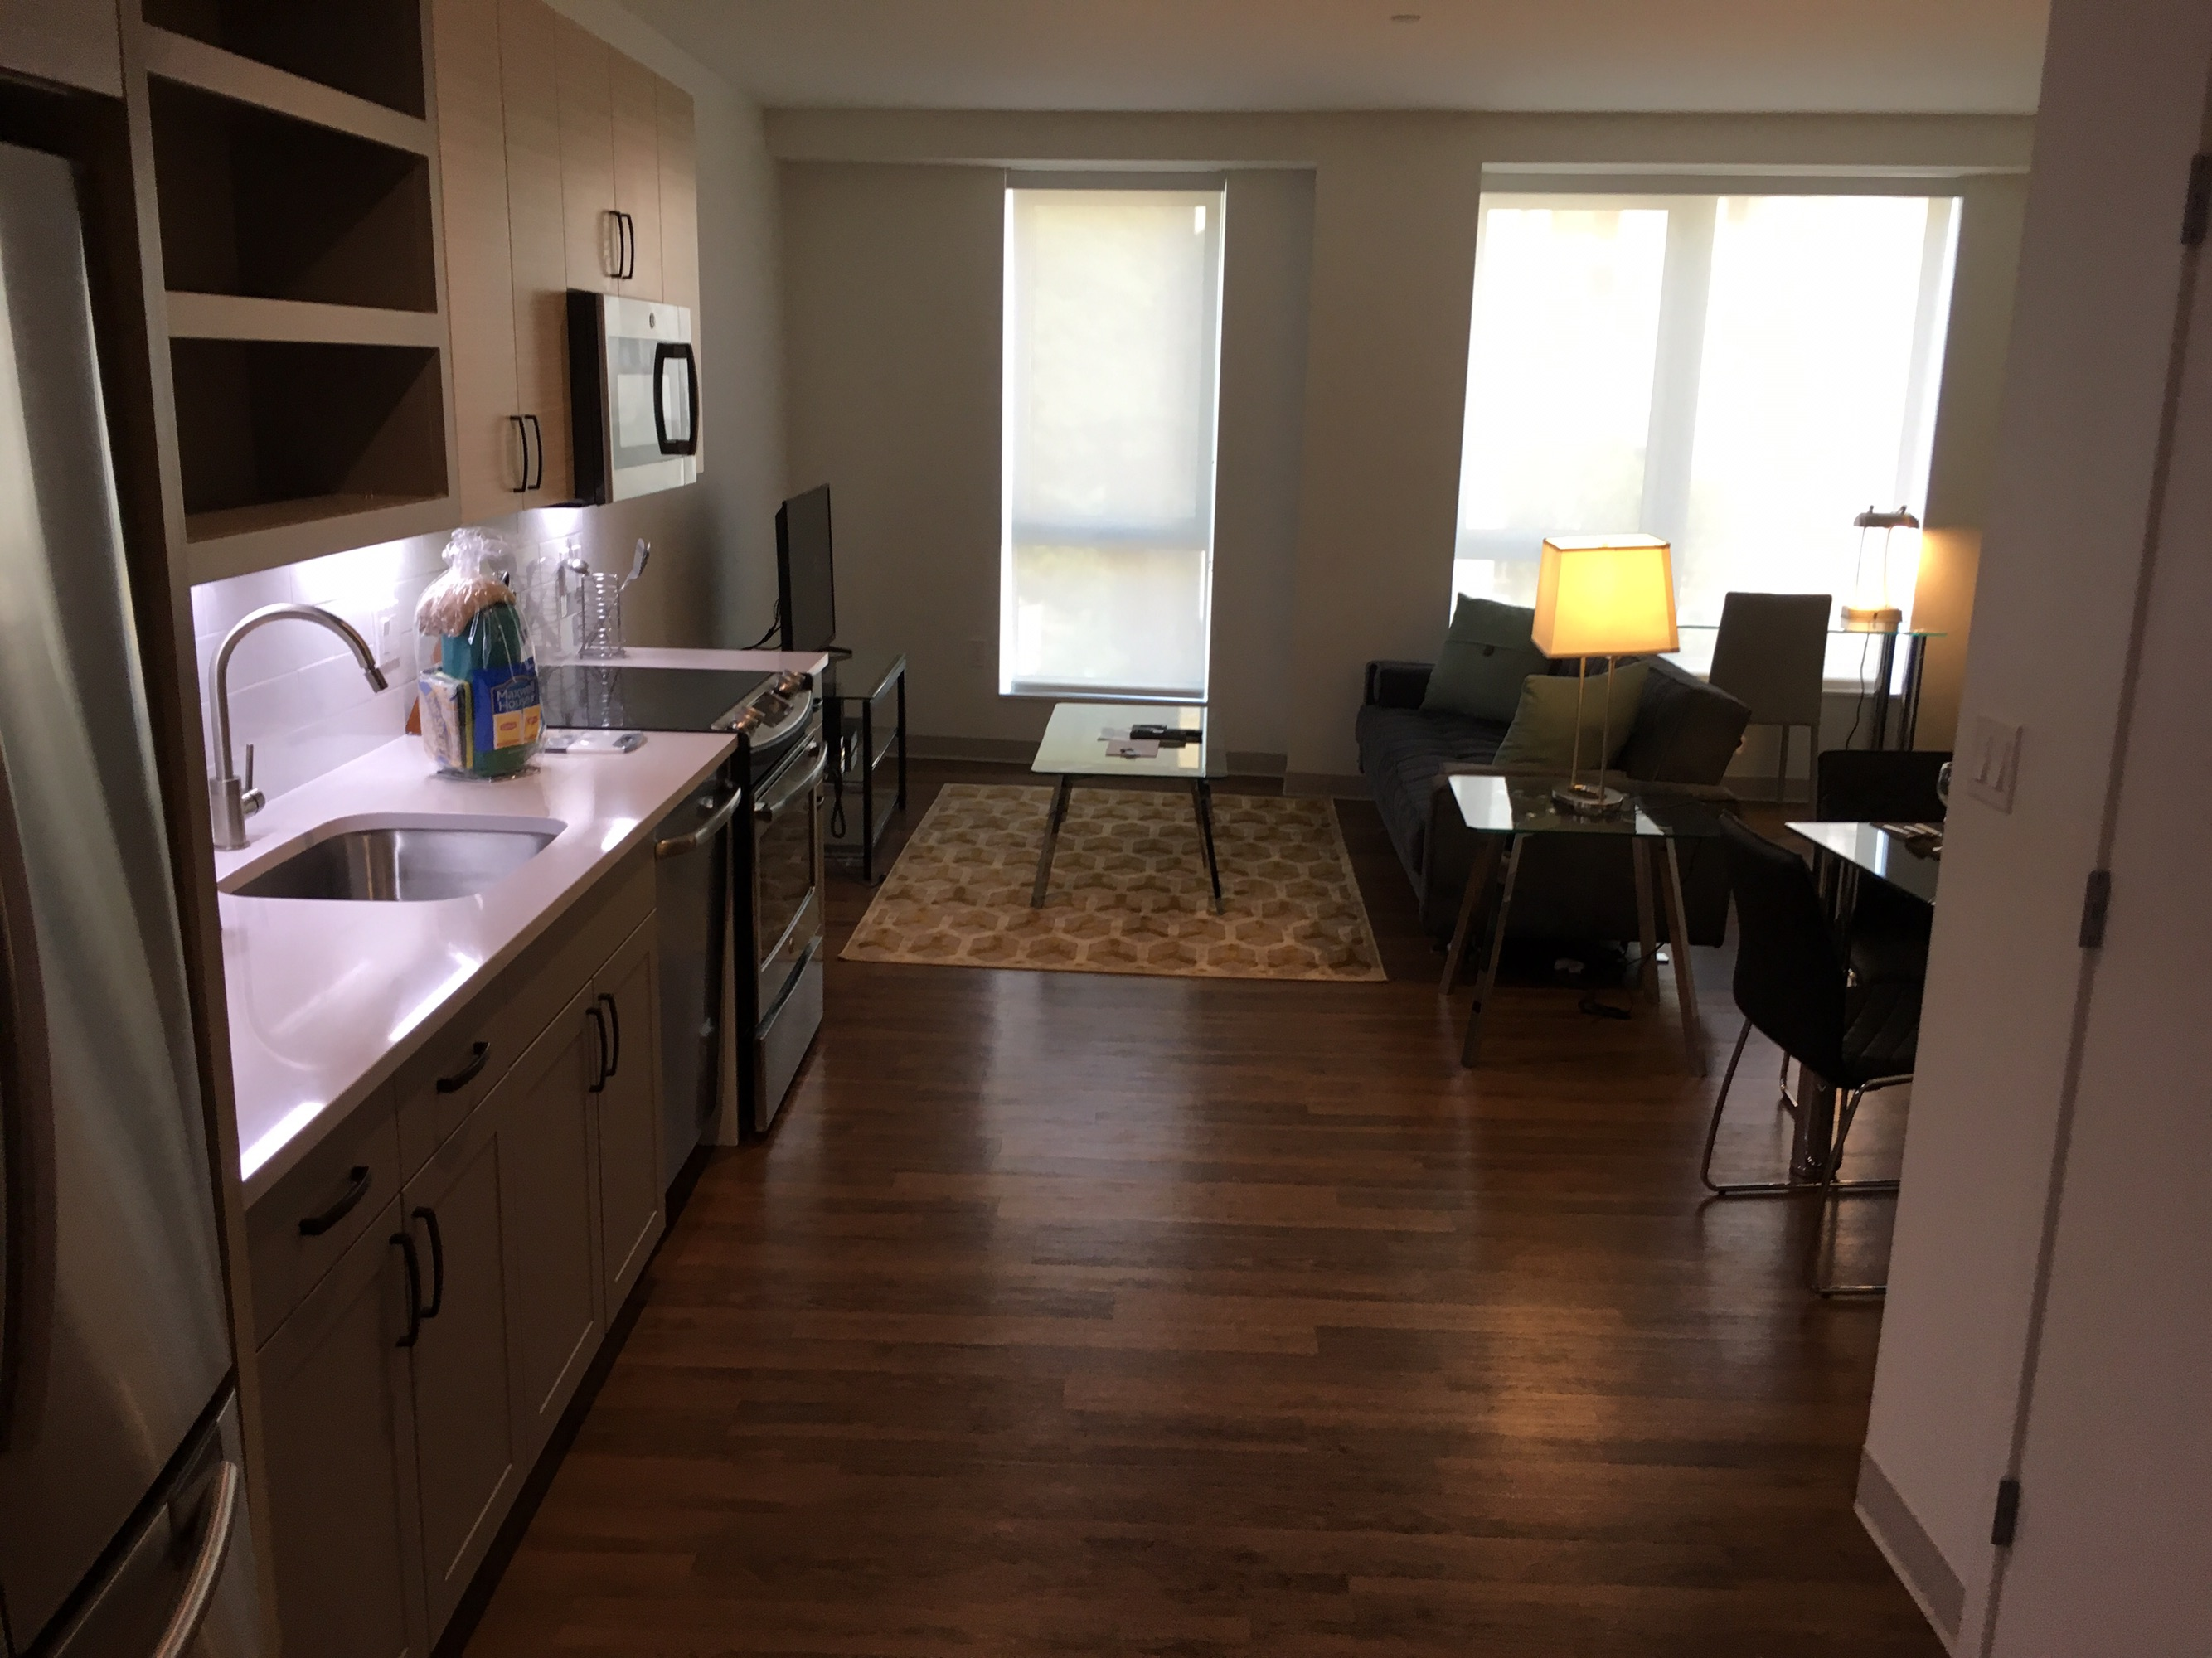 image 6 furnished 1 bedroom Apartment for rent in Jamaica Plain, Boston Area